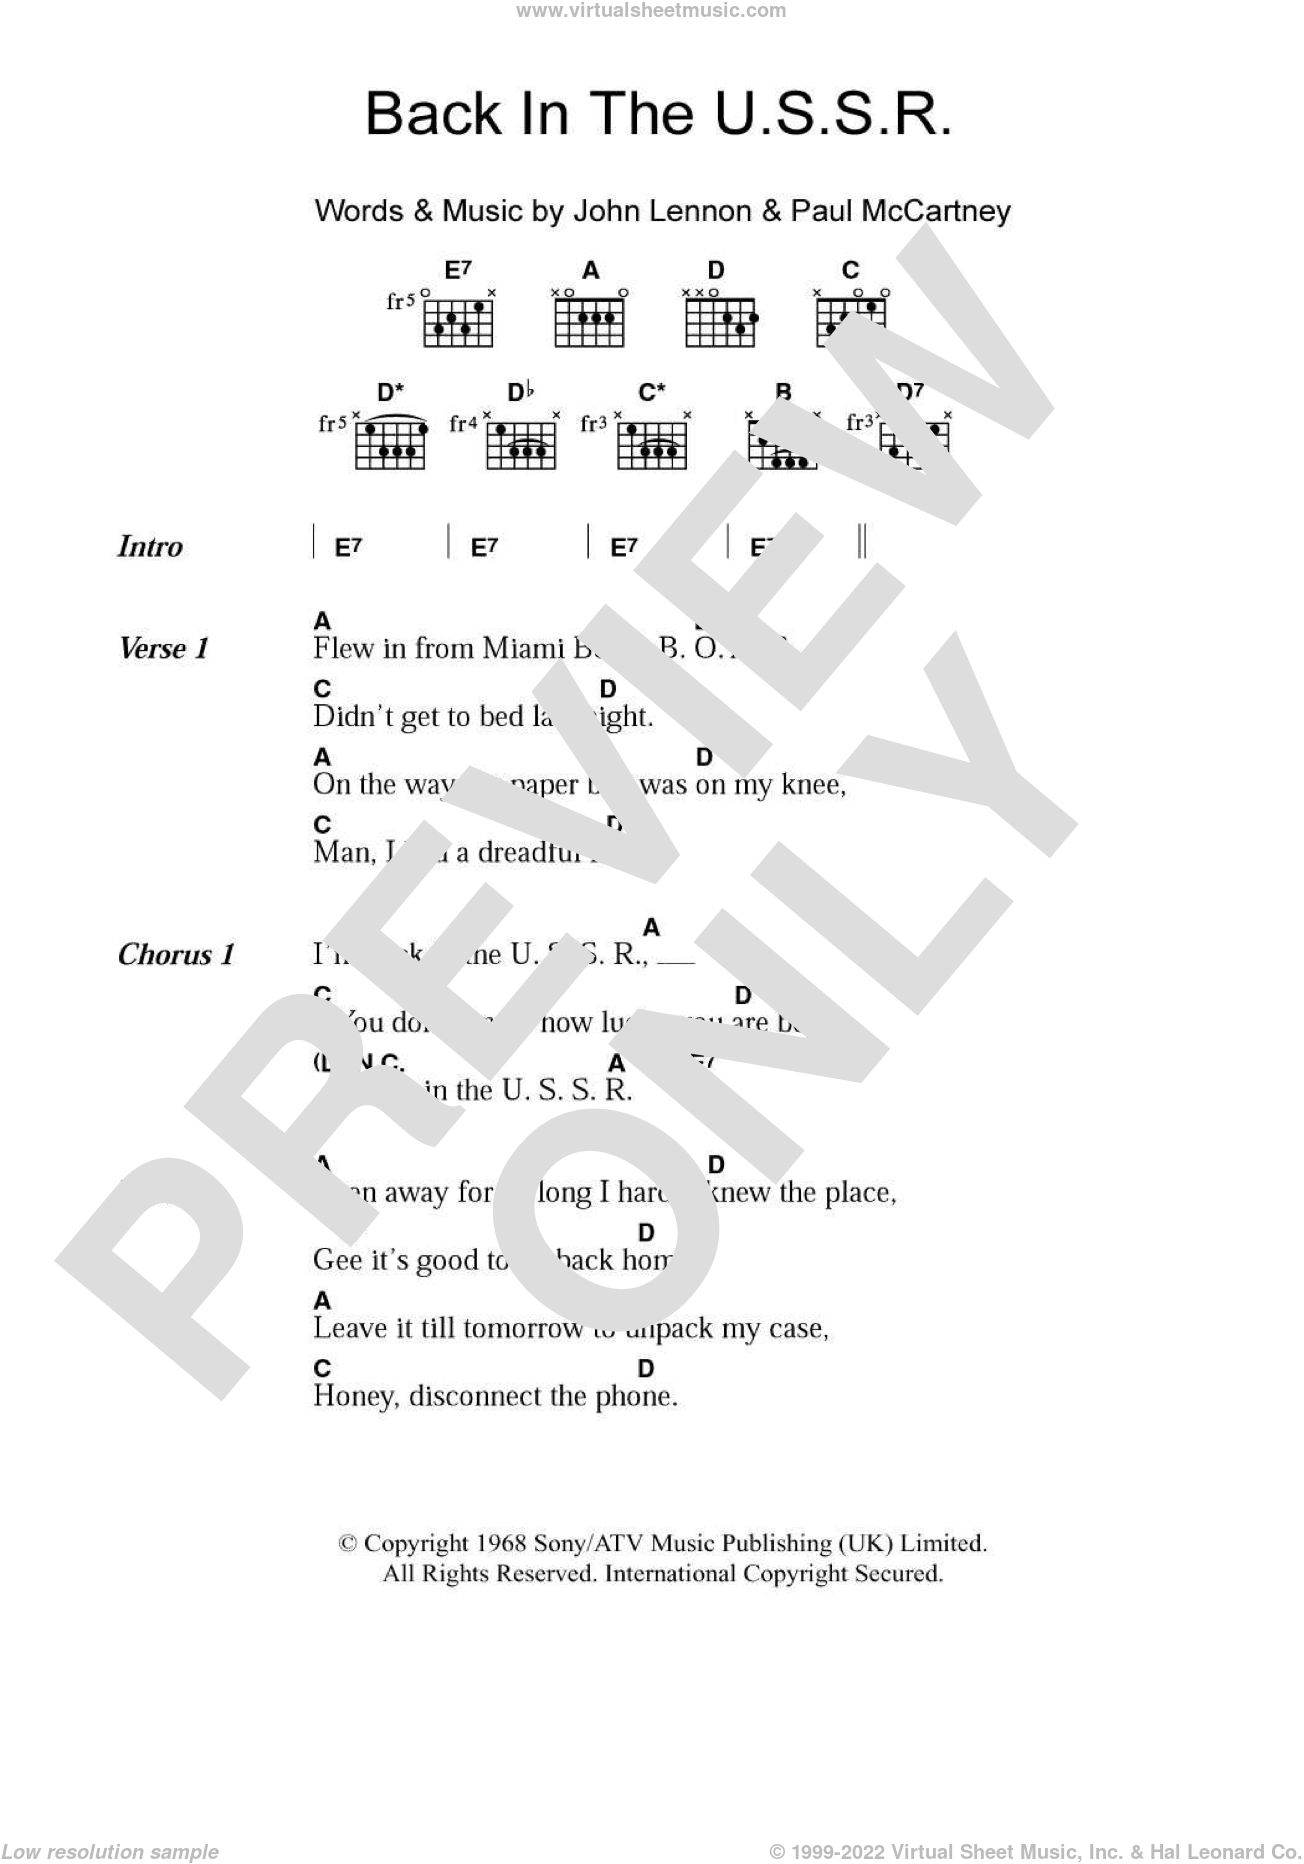 Back In The USSR sheet music for guitar (chords) by Paul McCartney